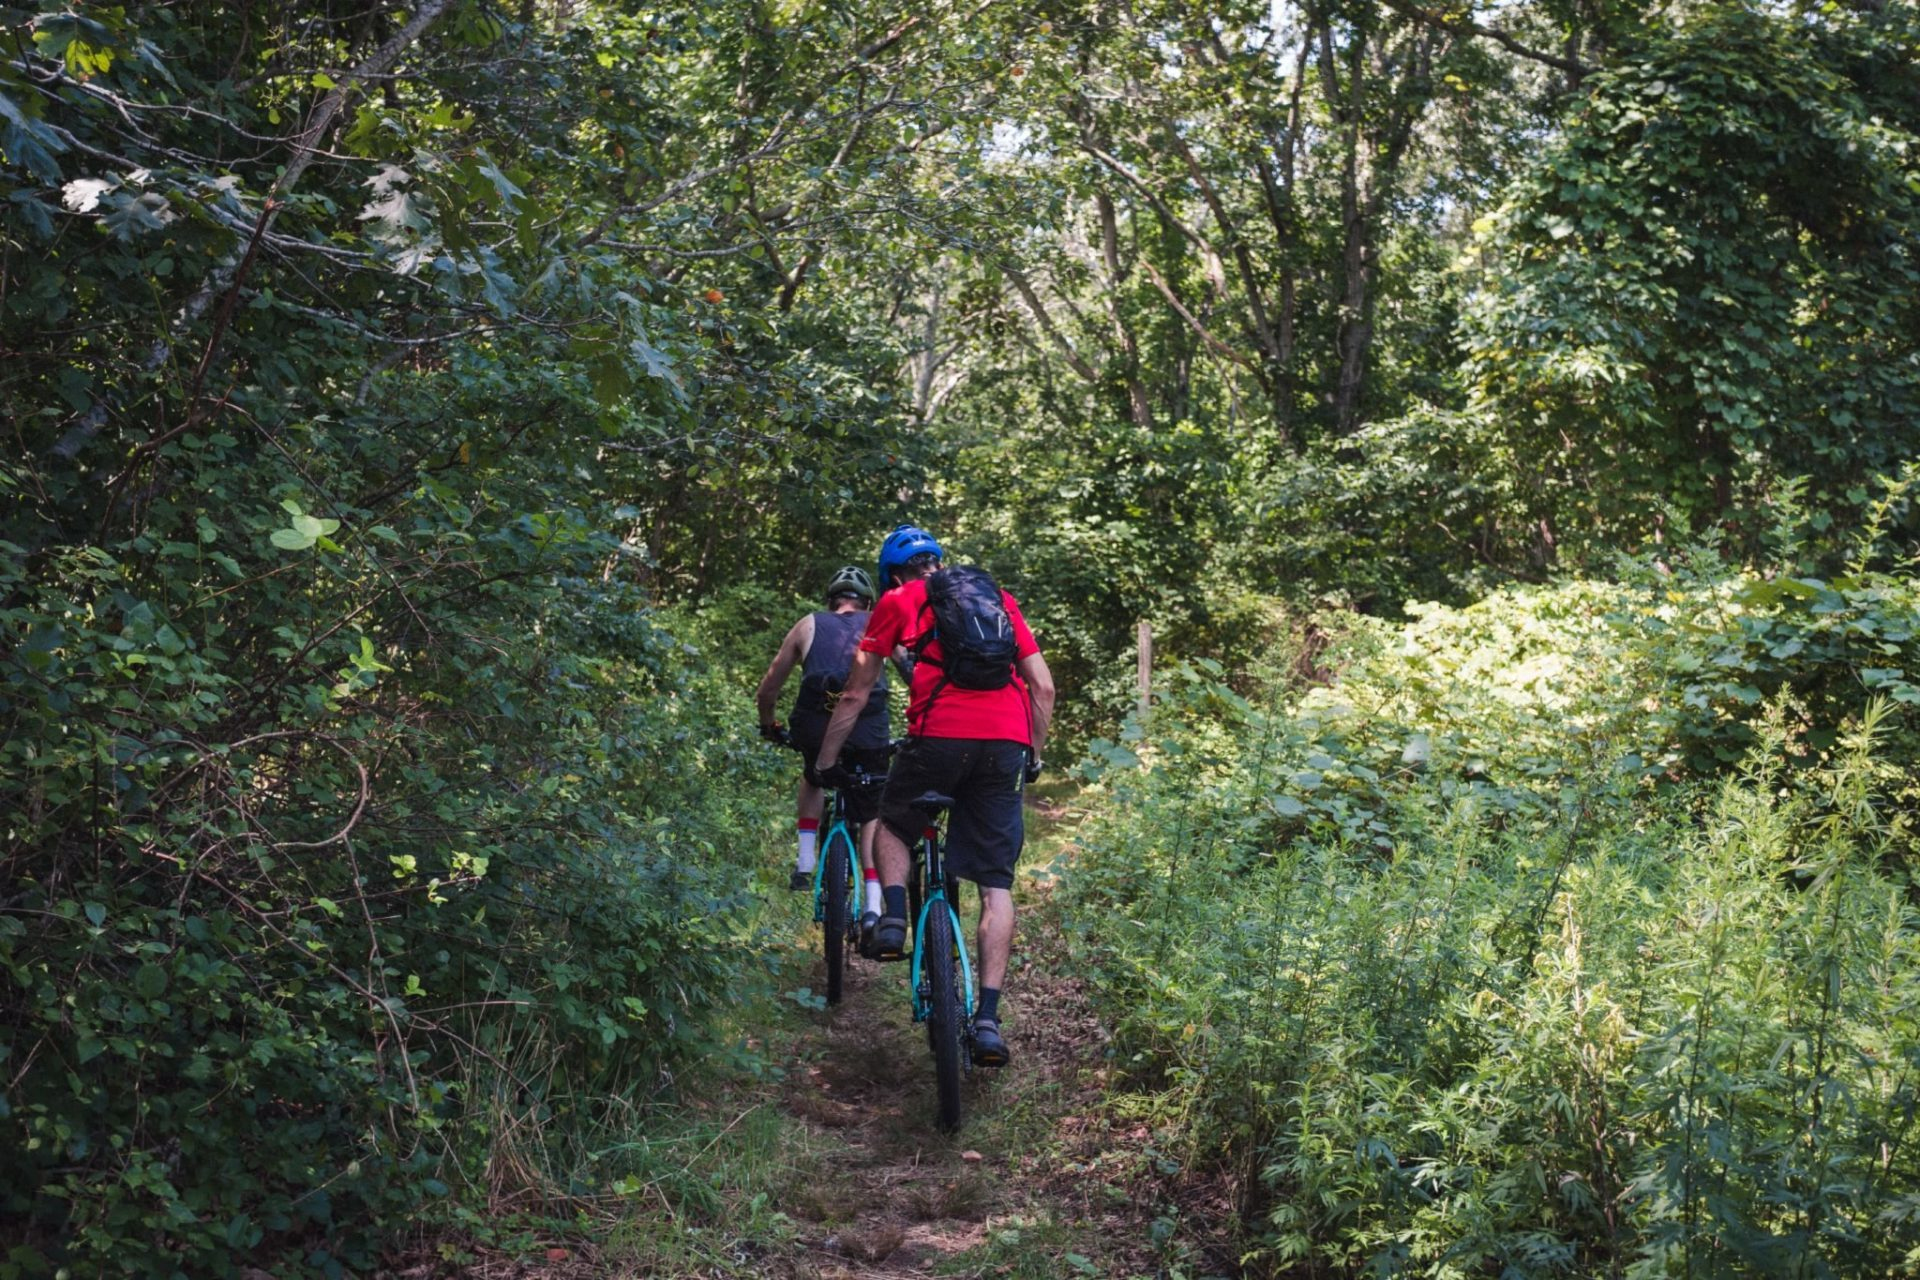 Mountain Biking Hither Woods SP, Long Island   57hours on mashomack preserve trail map, paumanok path trail map, great river trail map, south fork trail map, bear mountain loop trail map,